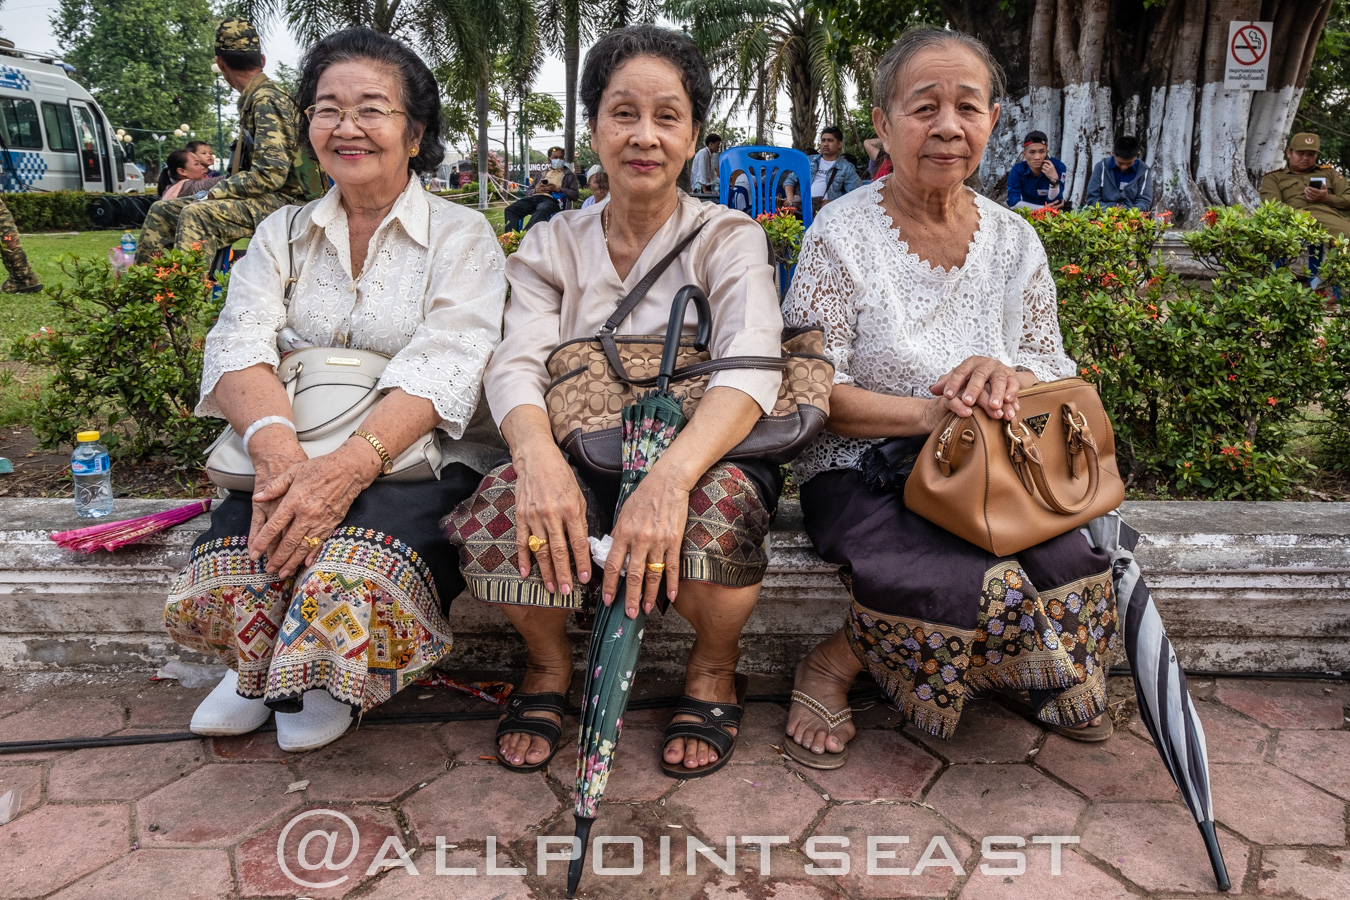 Lao matriachs hanging out in the park with traditional-style sarongs. by Jeff Pergiois